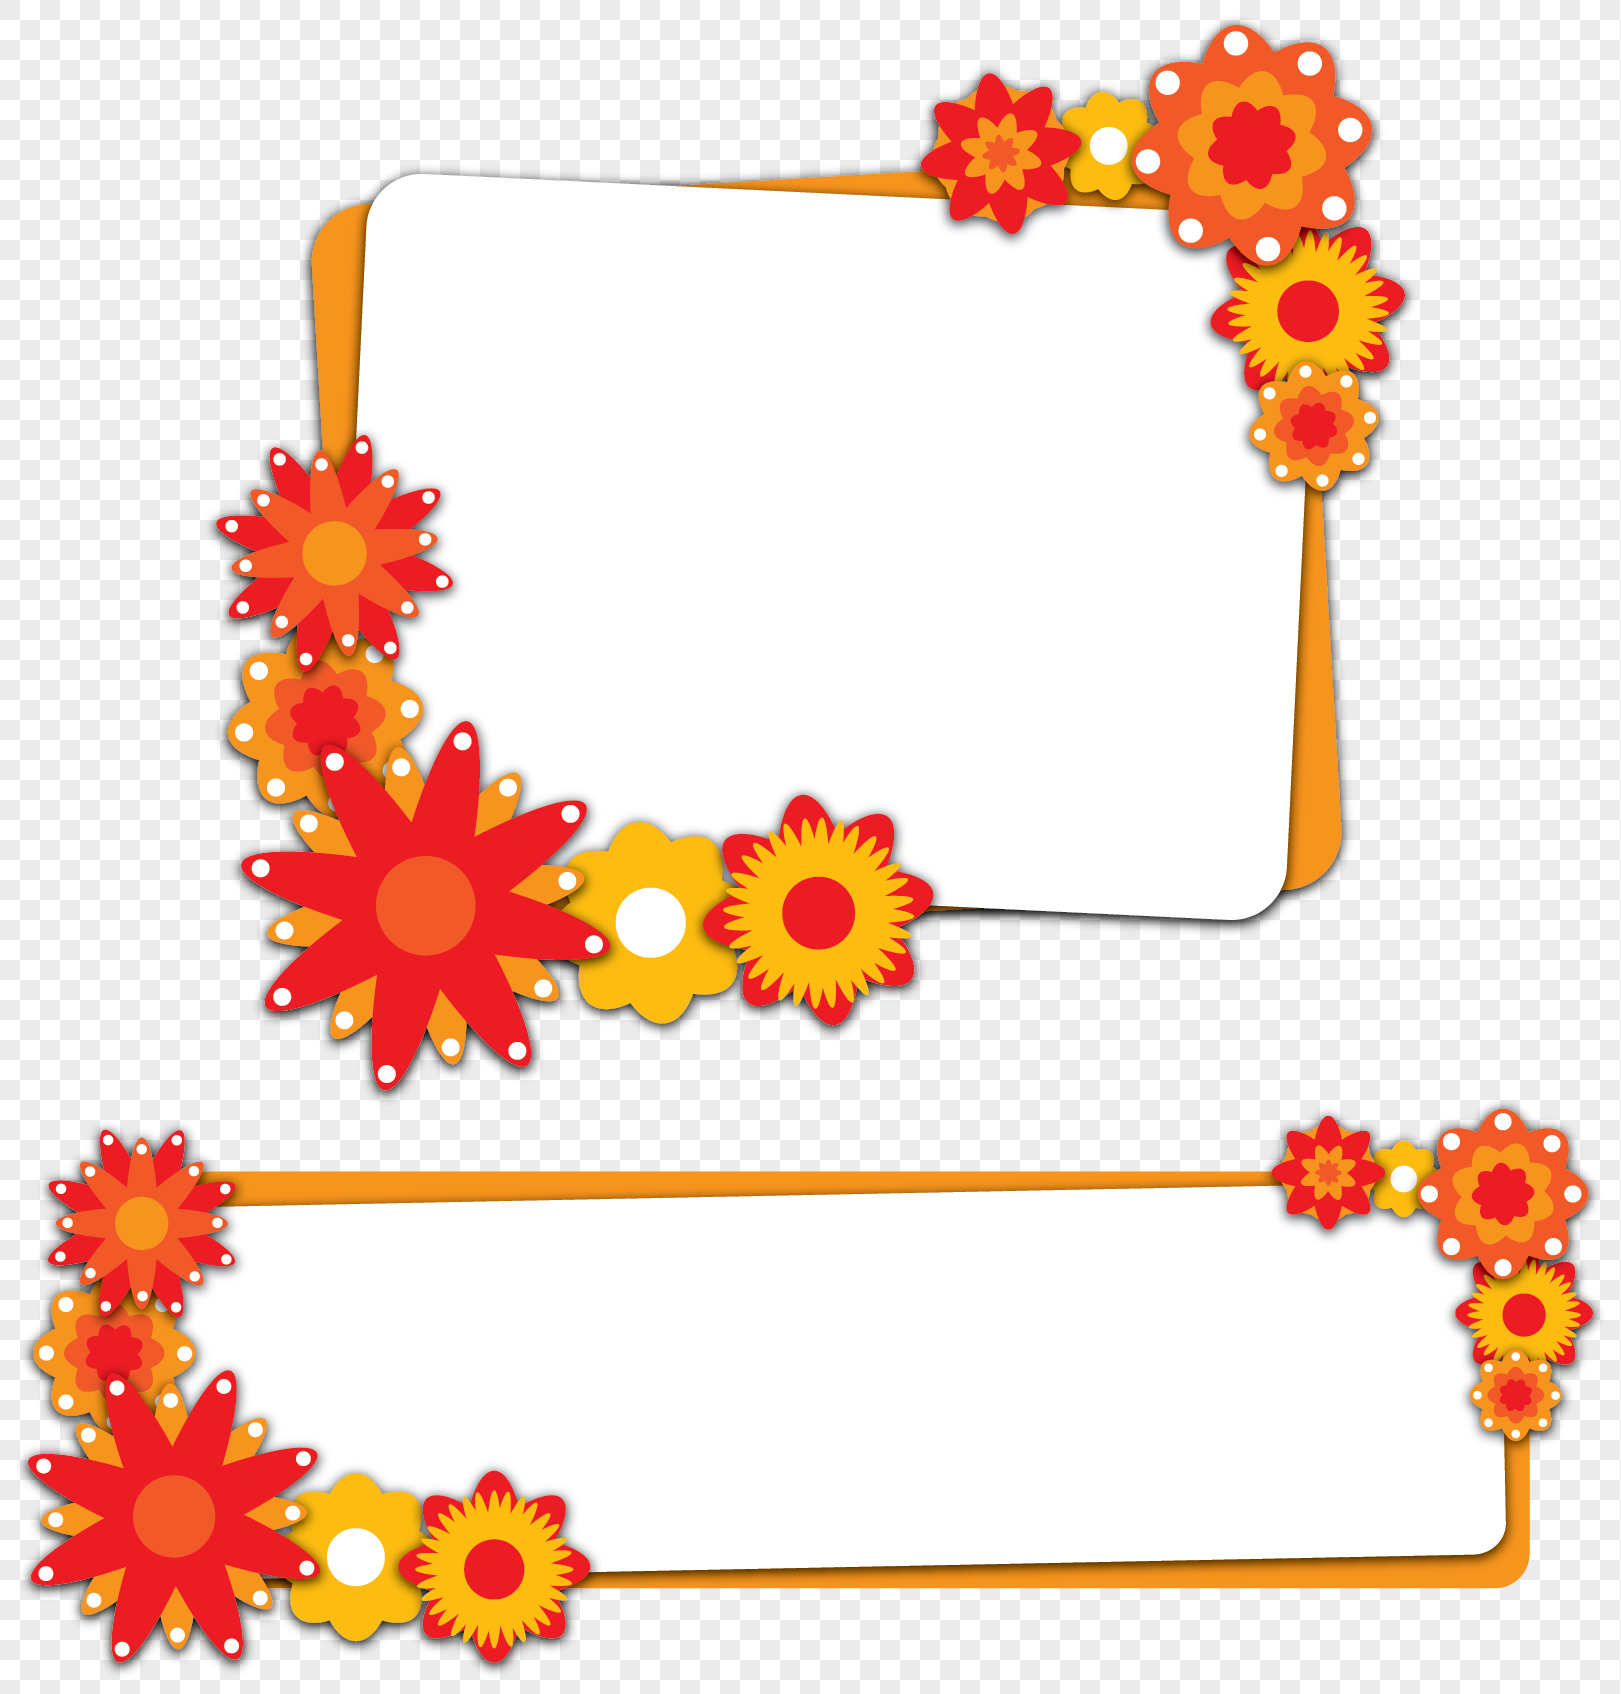 flower border theme box png image picture free download